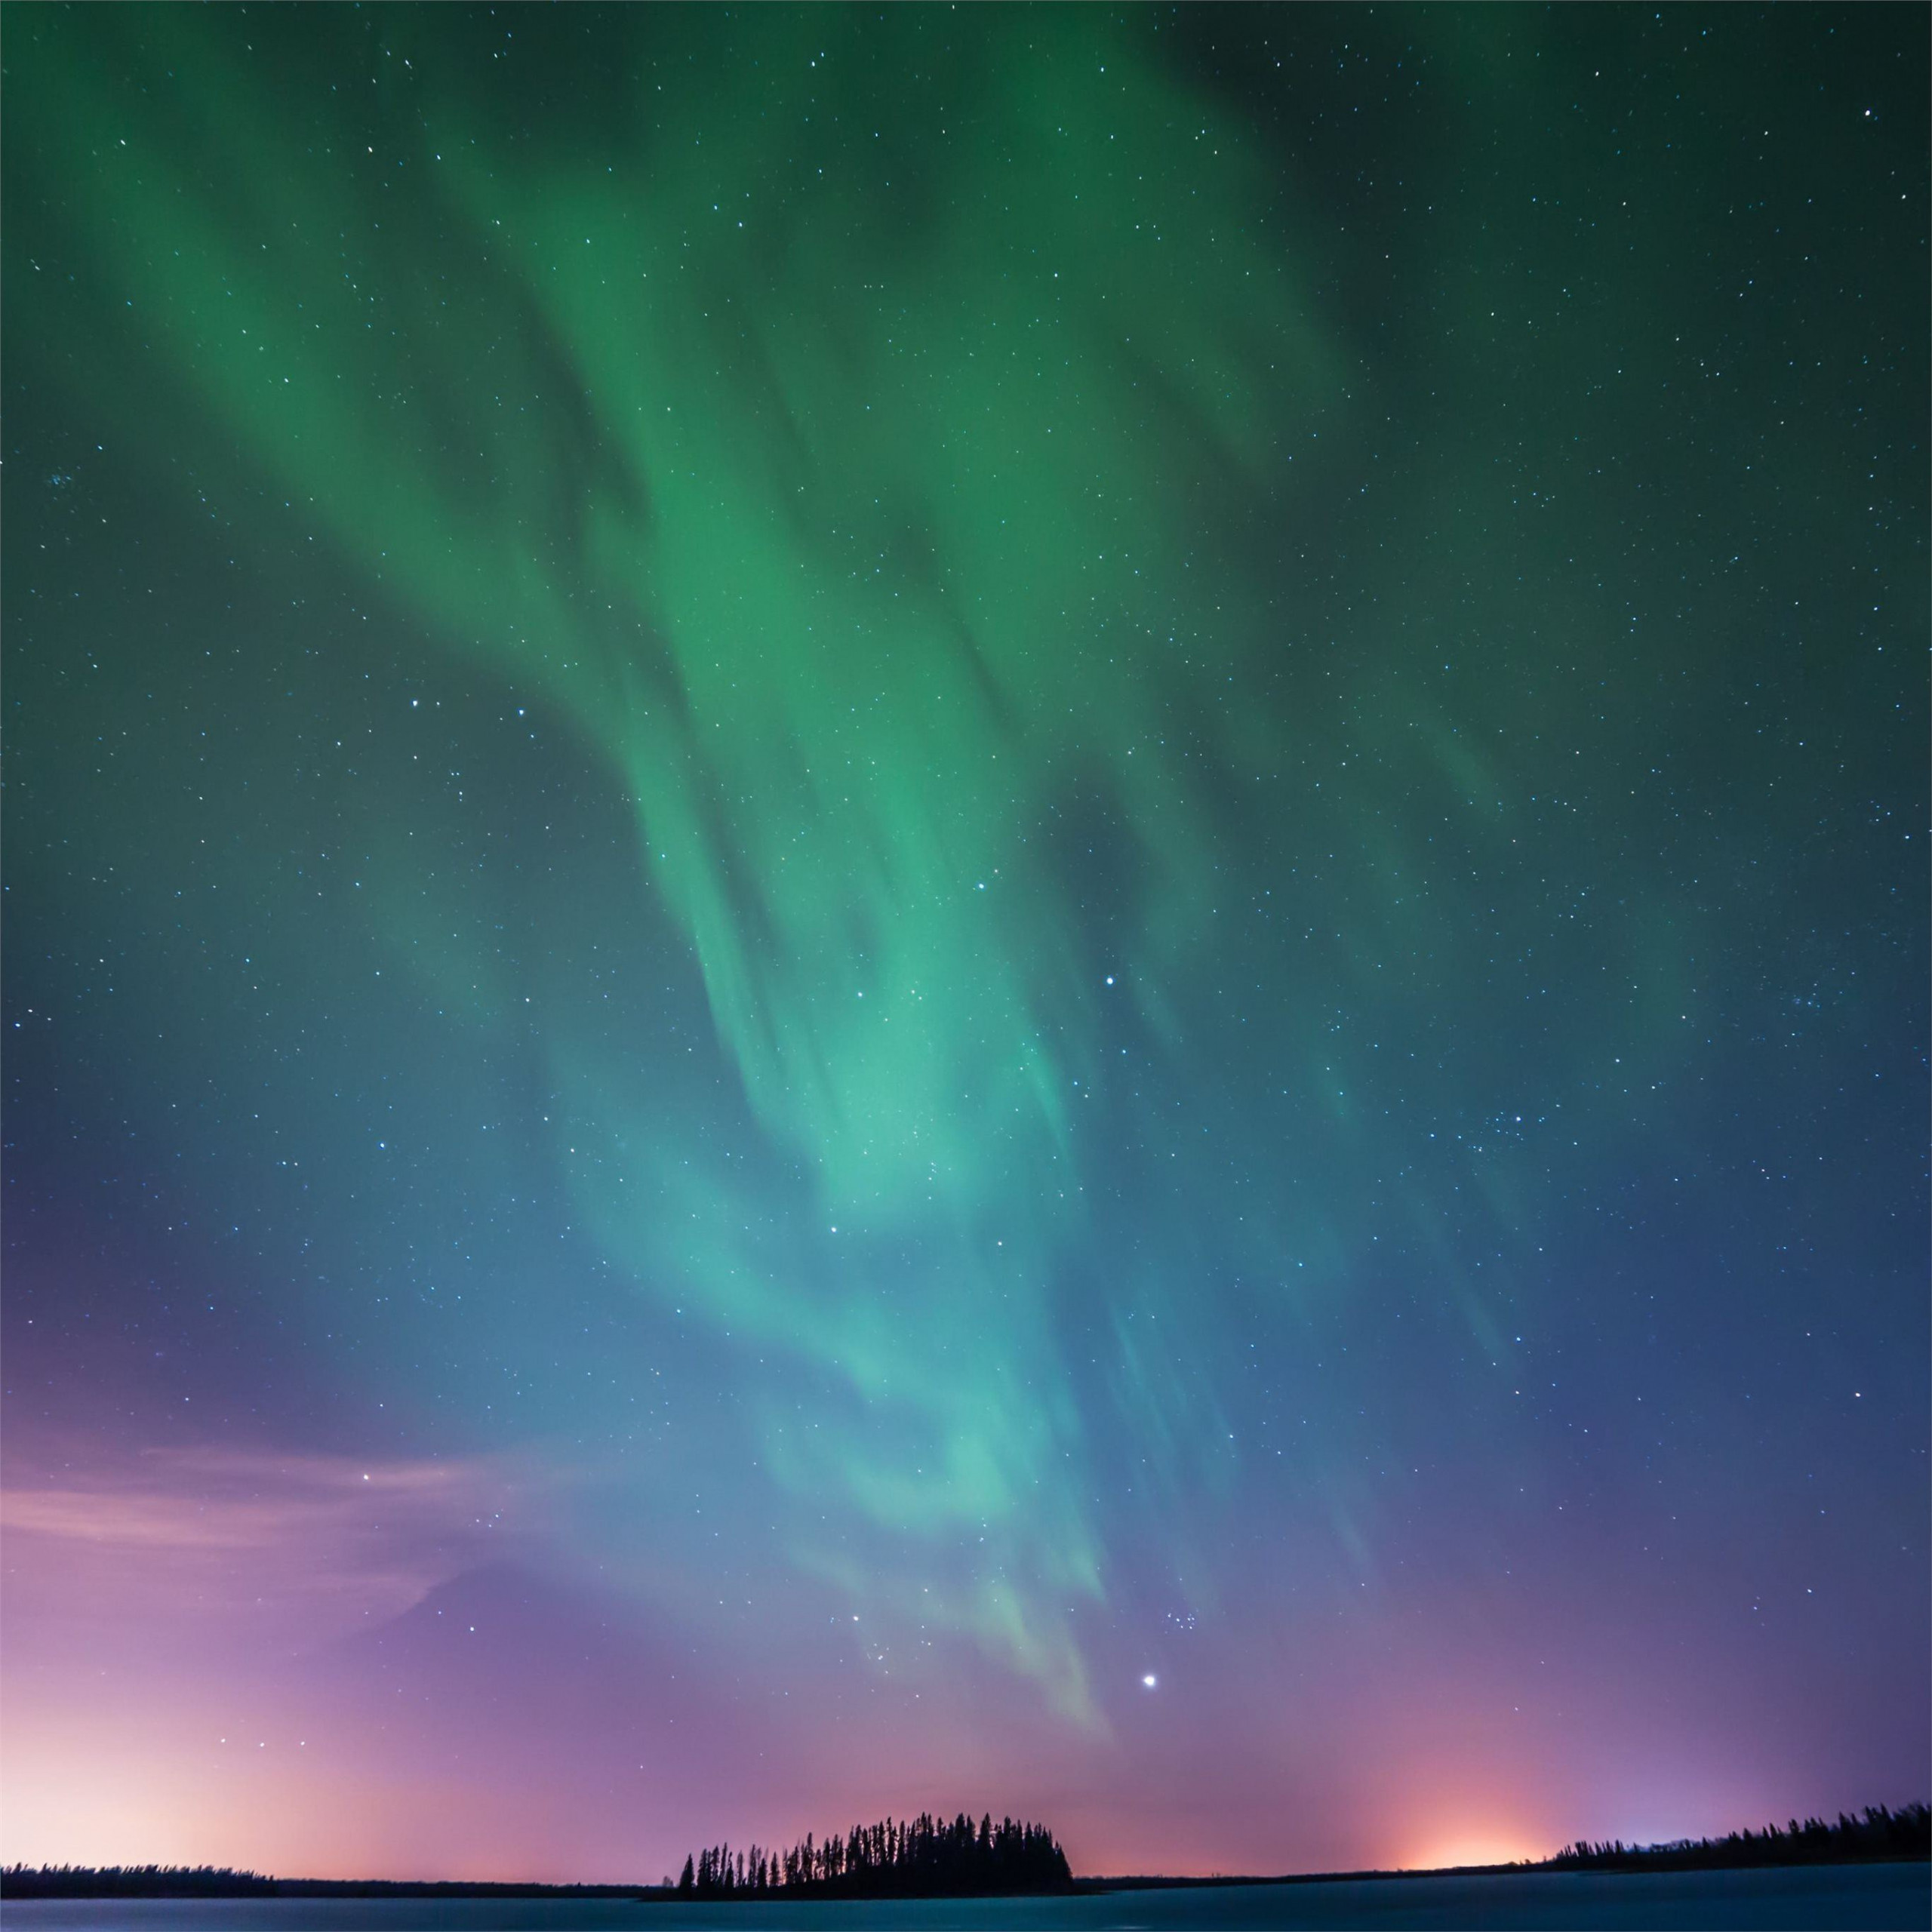 astotin lake northern lights 5k ipad pro wallpaper ilikewallpaper